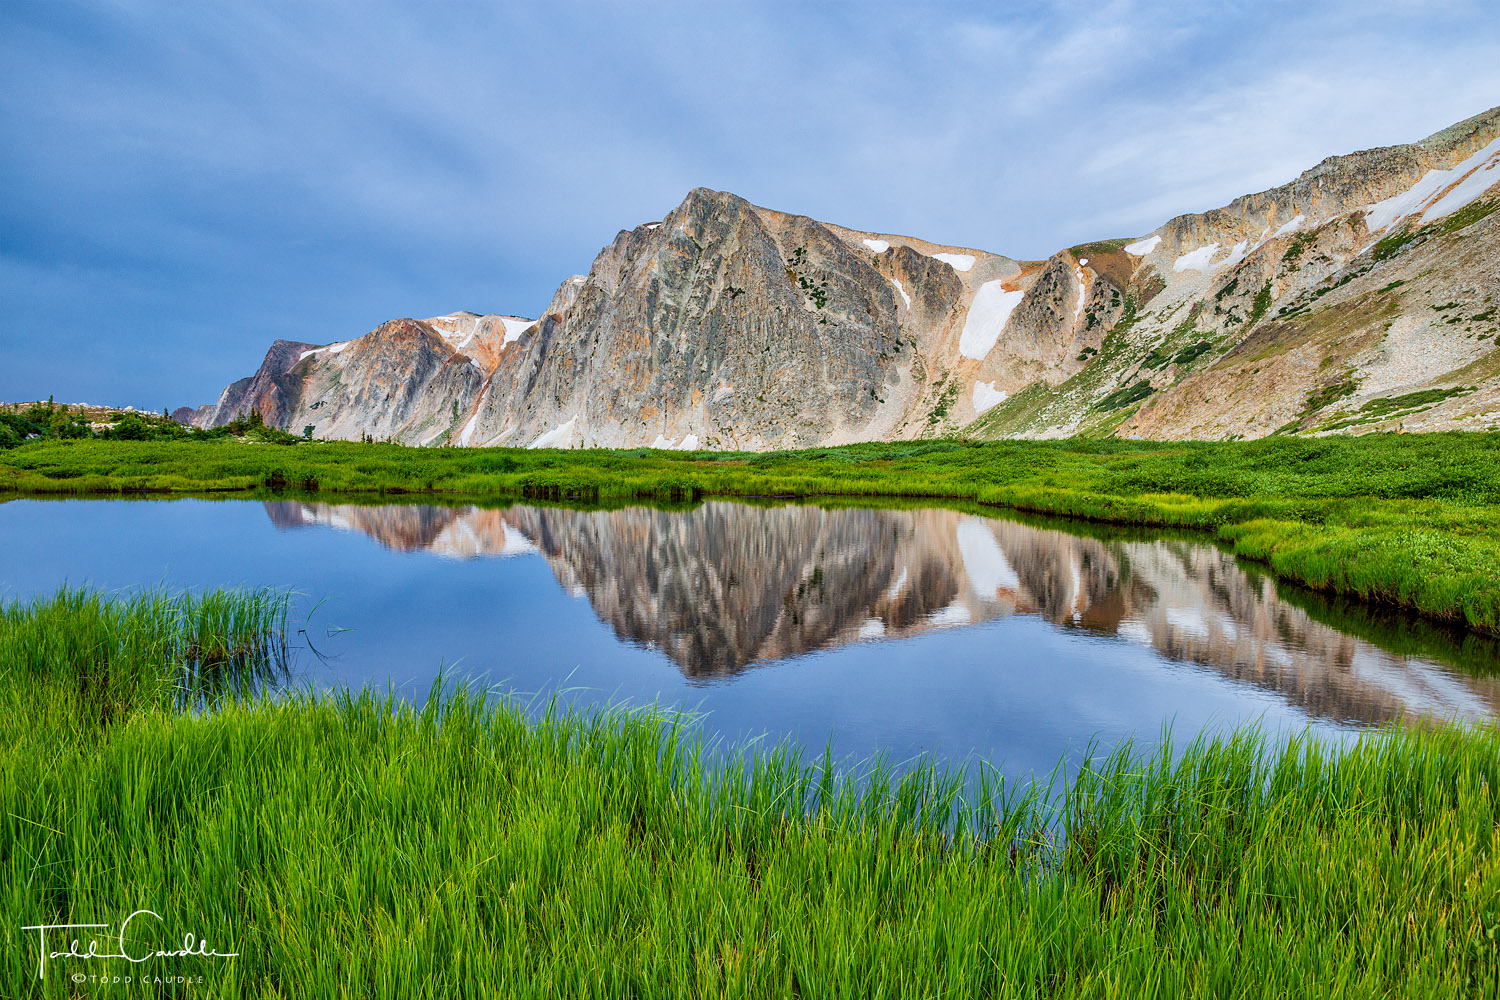 Old Main (11,755') reflects in a perfectly mirrored tarn at 11,000 feet in the Snowy Range.